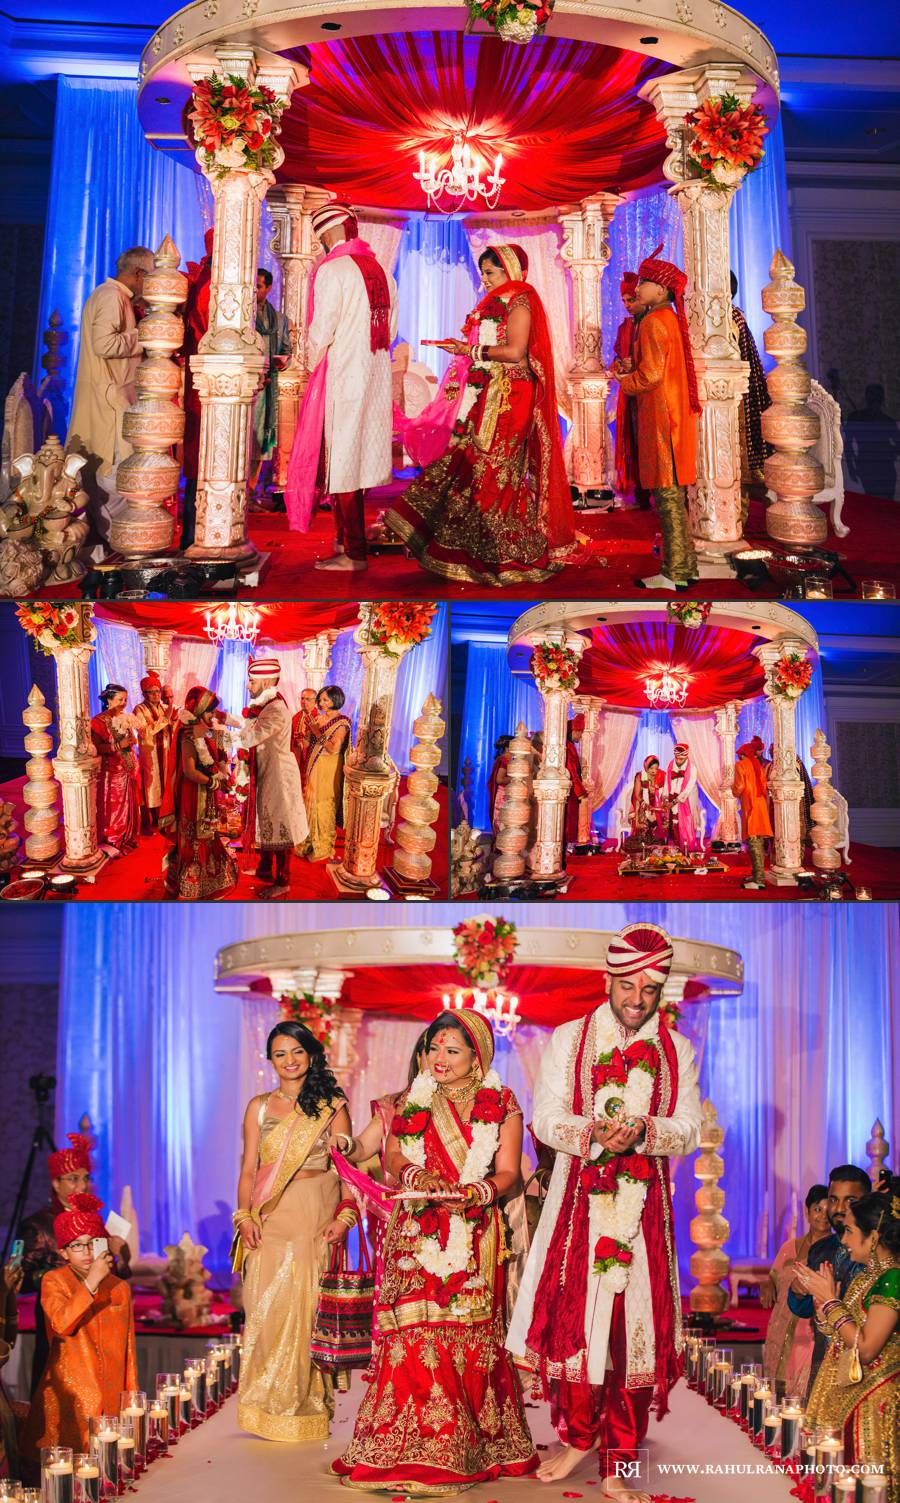 Ritz Carlton Tysons Corner - Virginia Gujarati Hindu Wedding Ceremony - Rahul Rana Photography